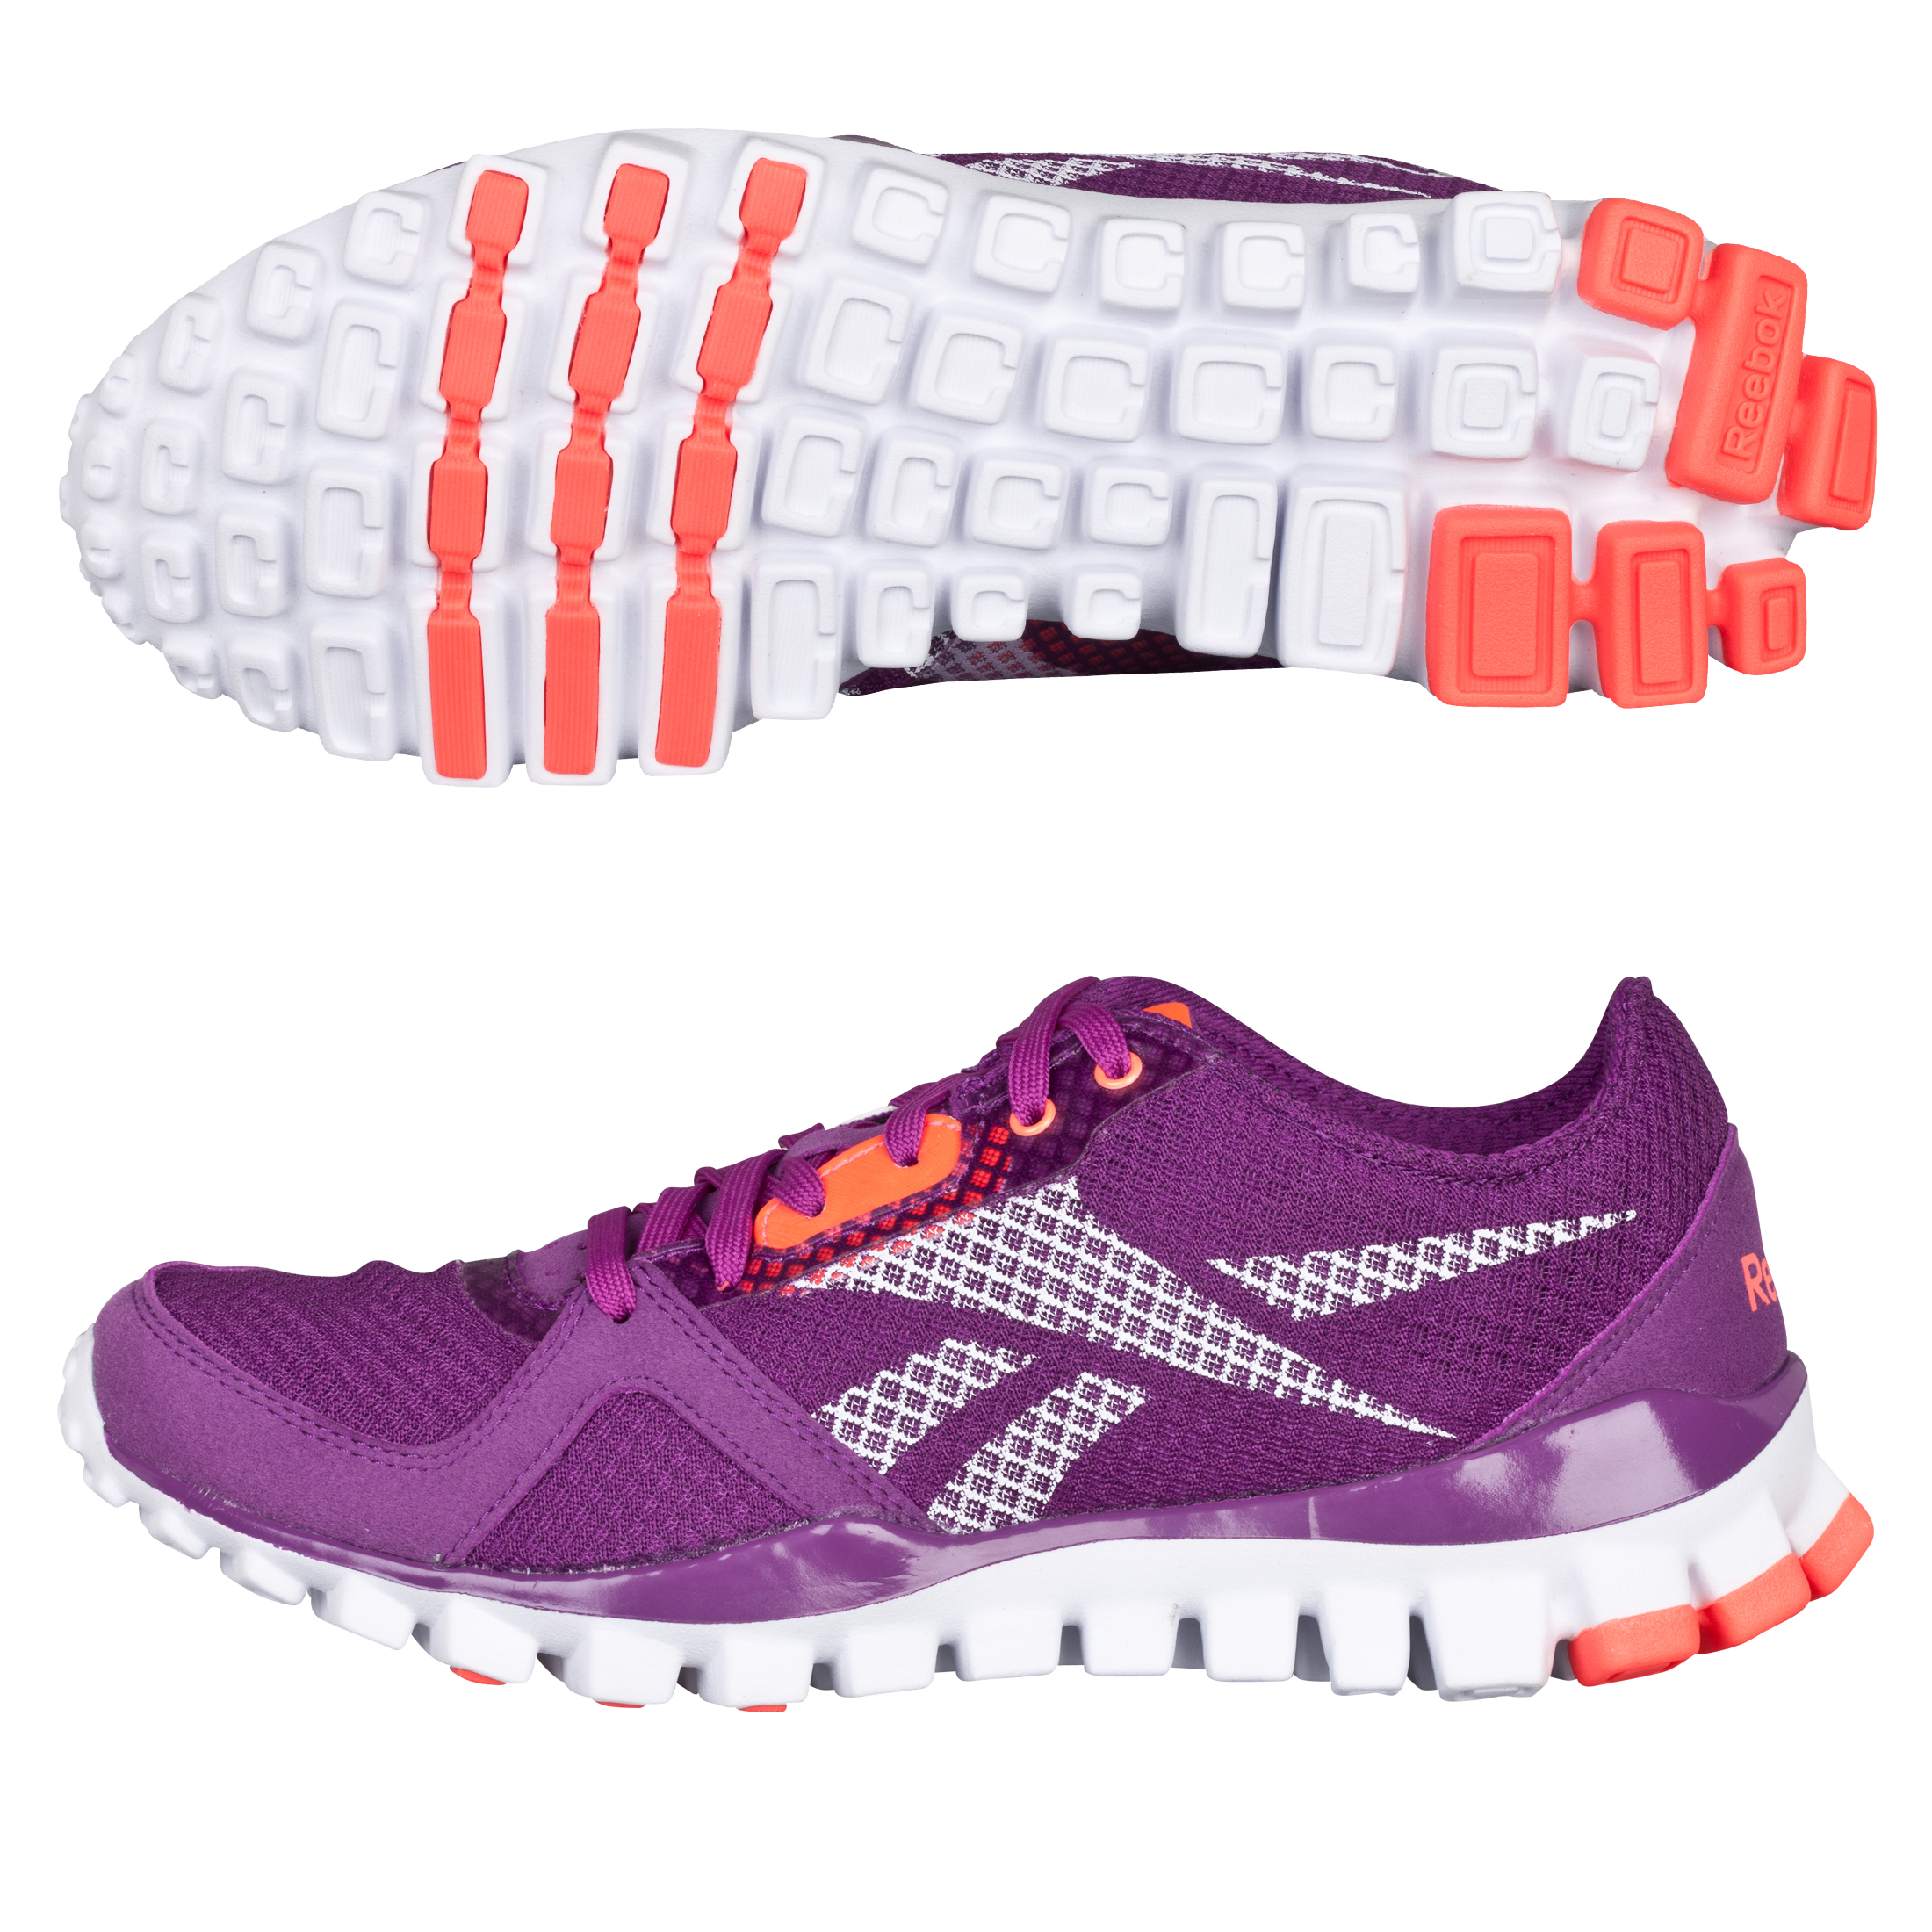 Reebok Realflex Train Athletic Trainer - Aubergine/Vit C/White - Women